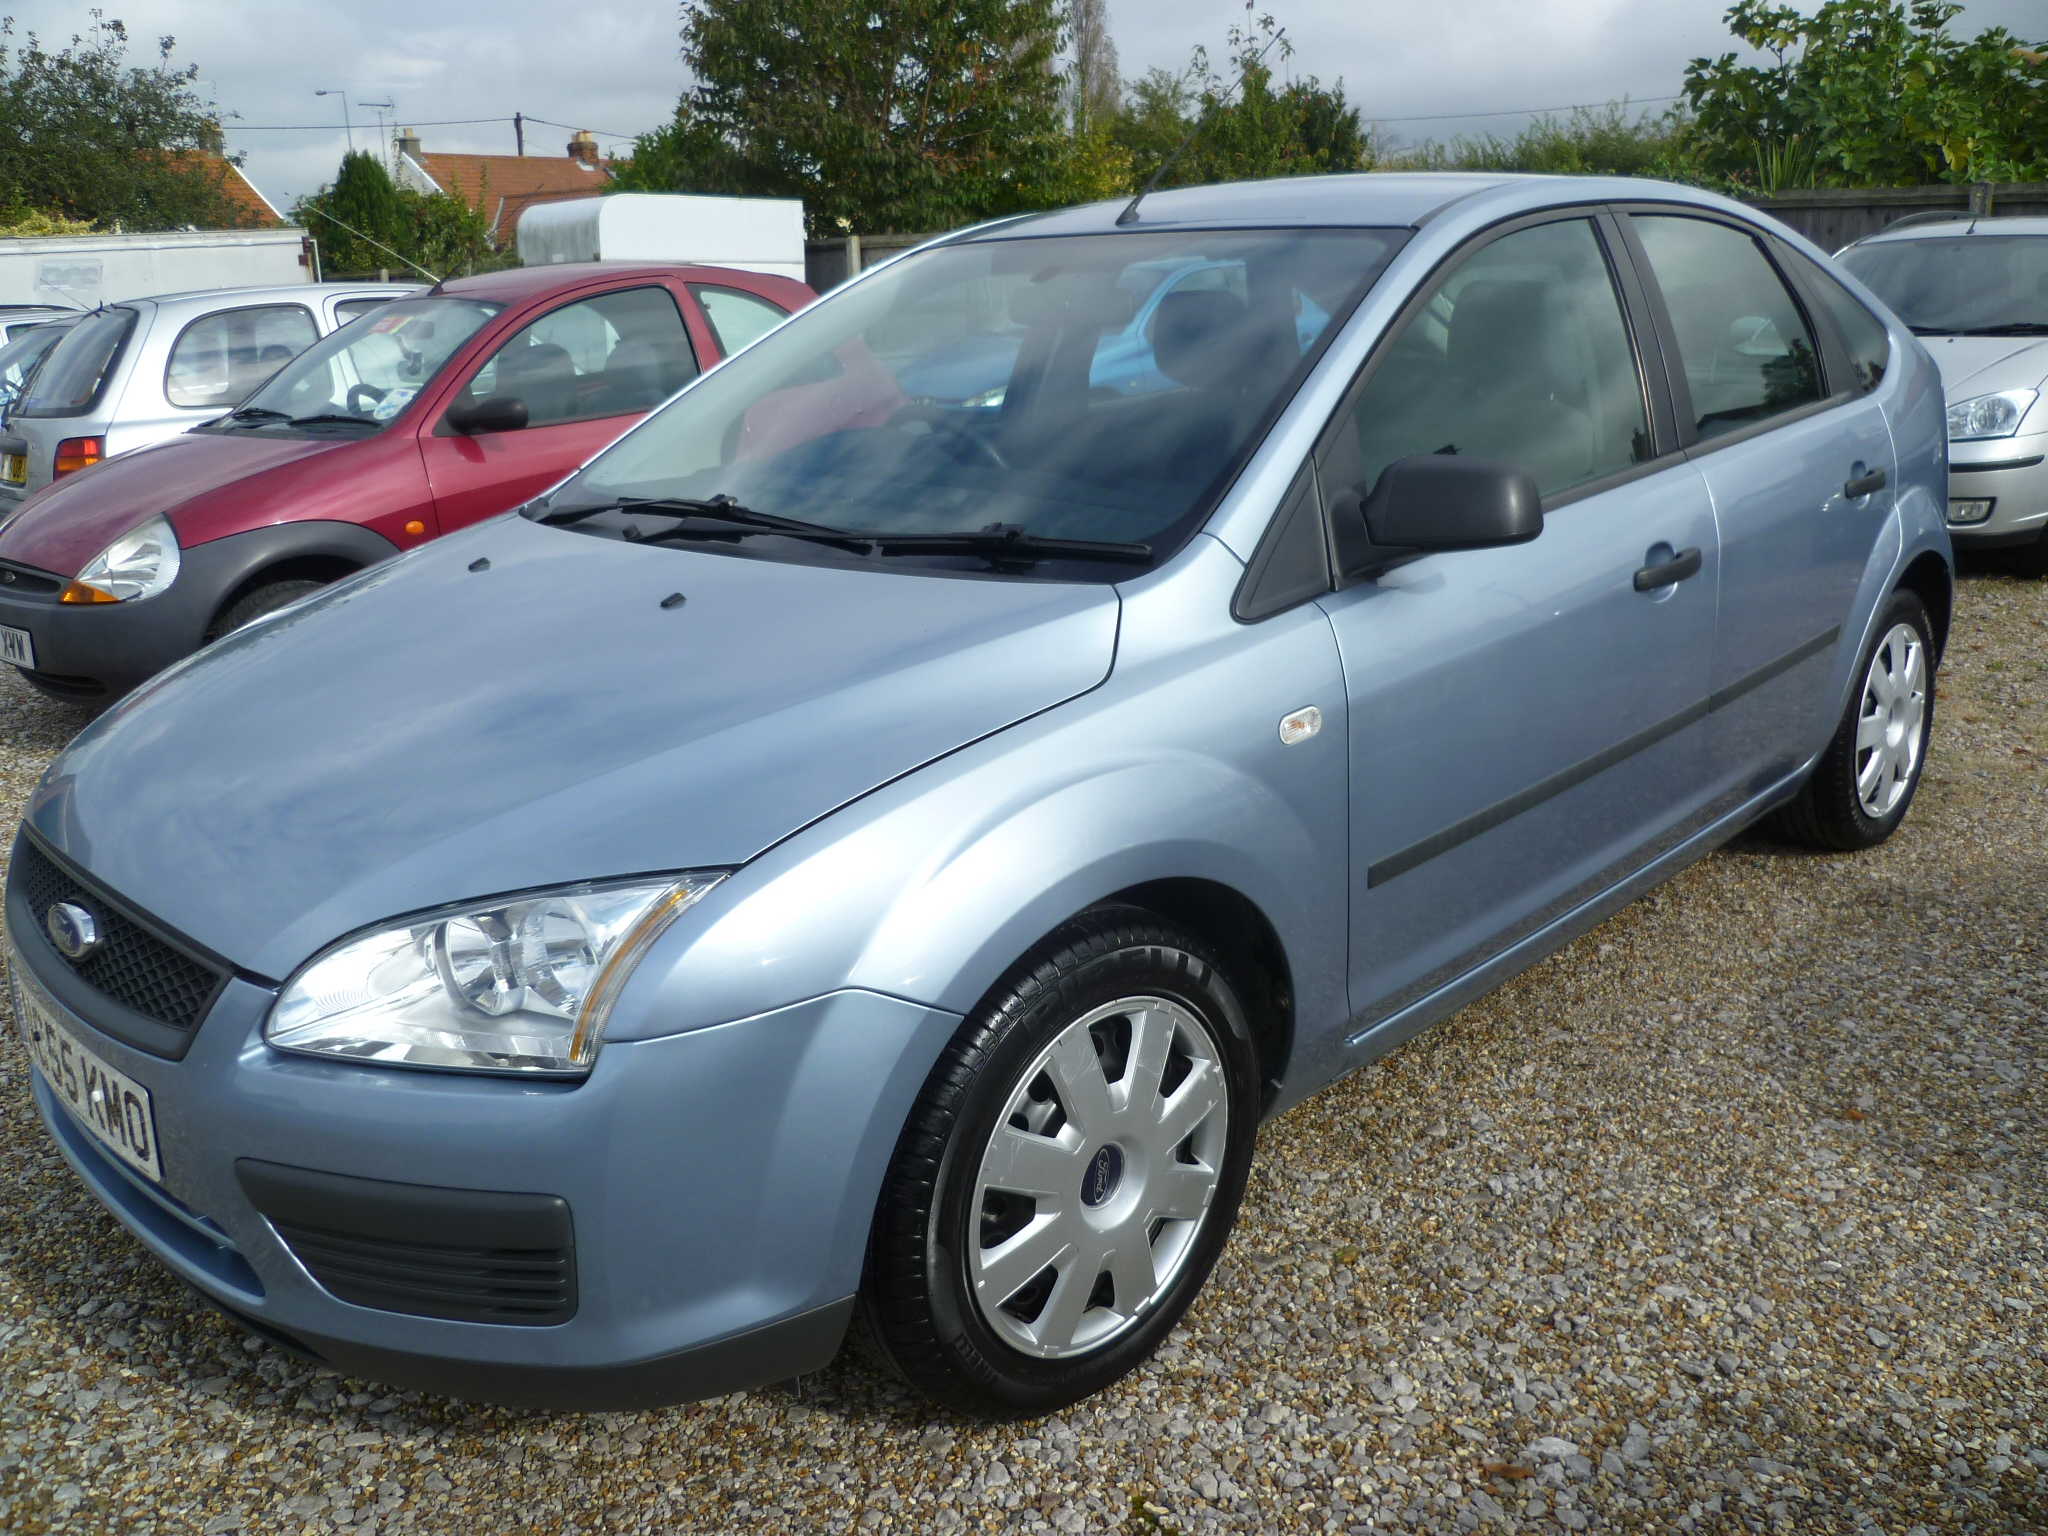 Ford Focus 1.6 LX Automatic 002